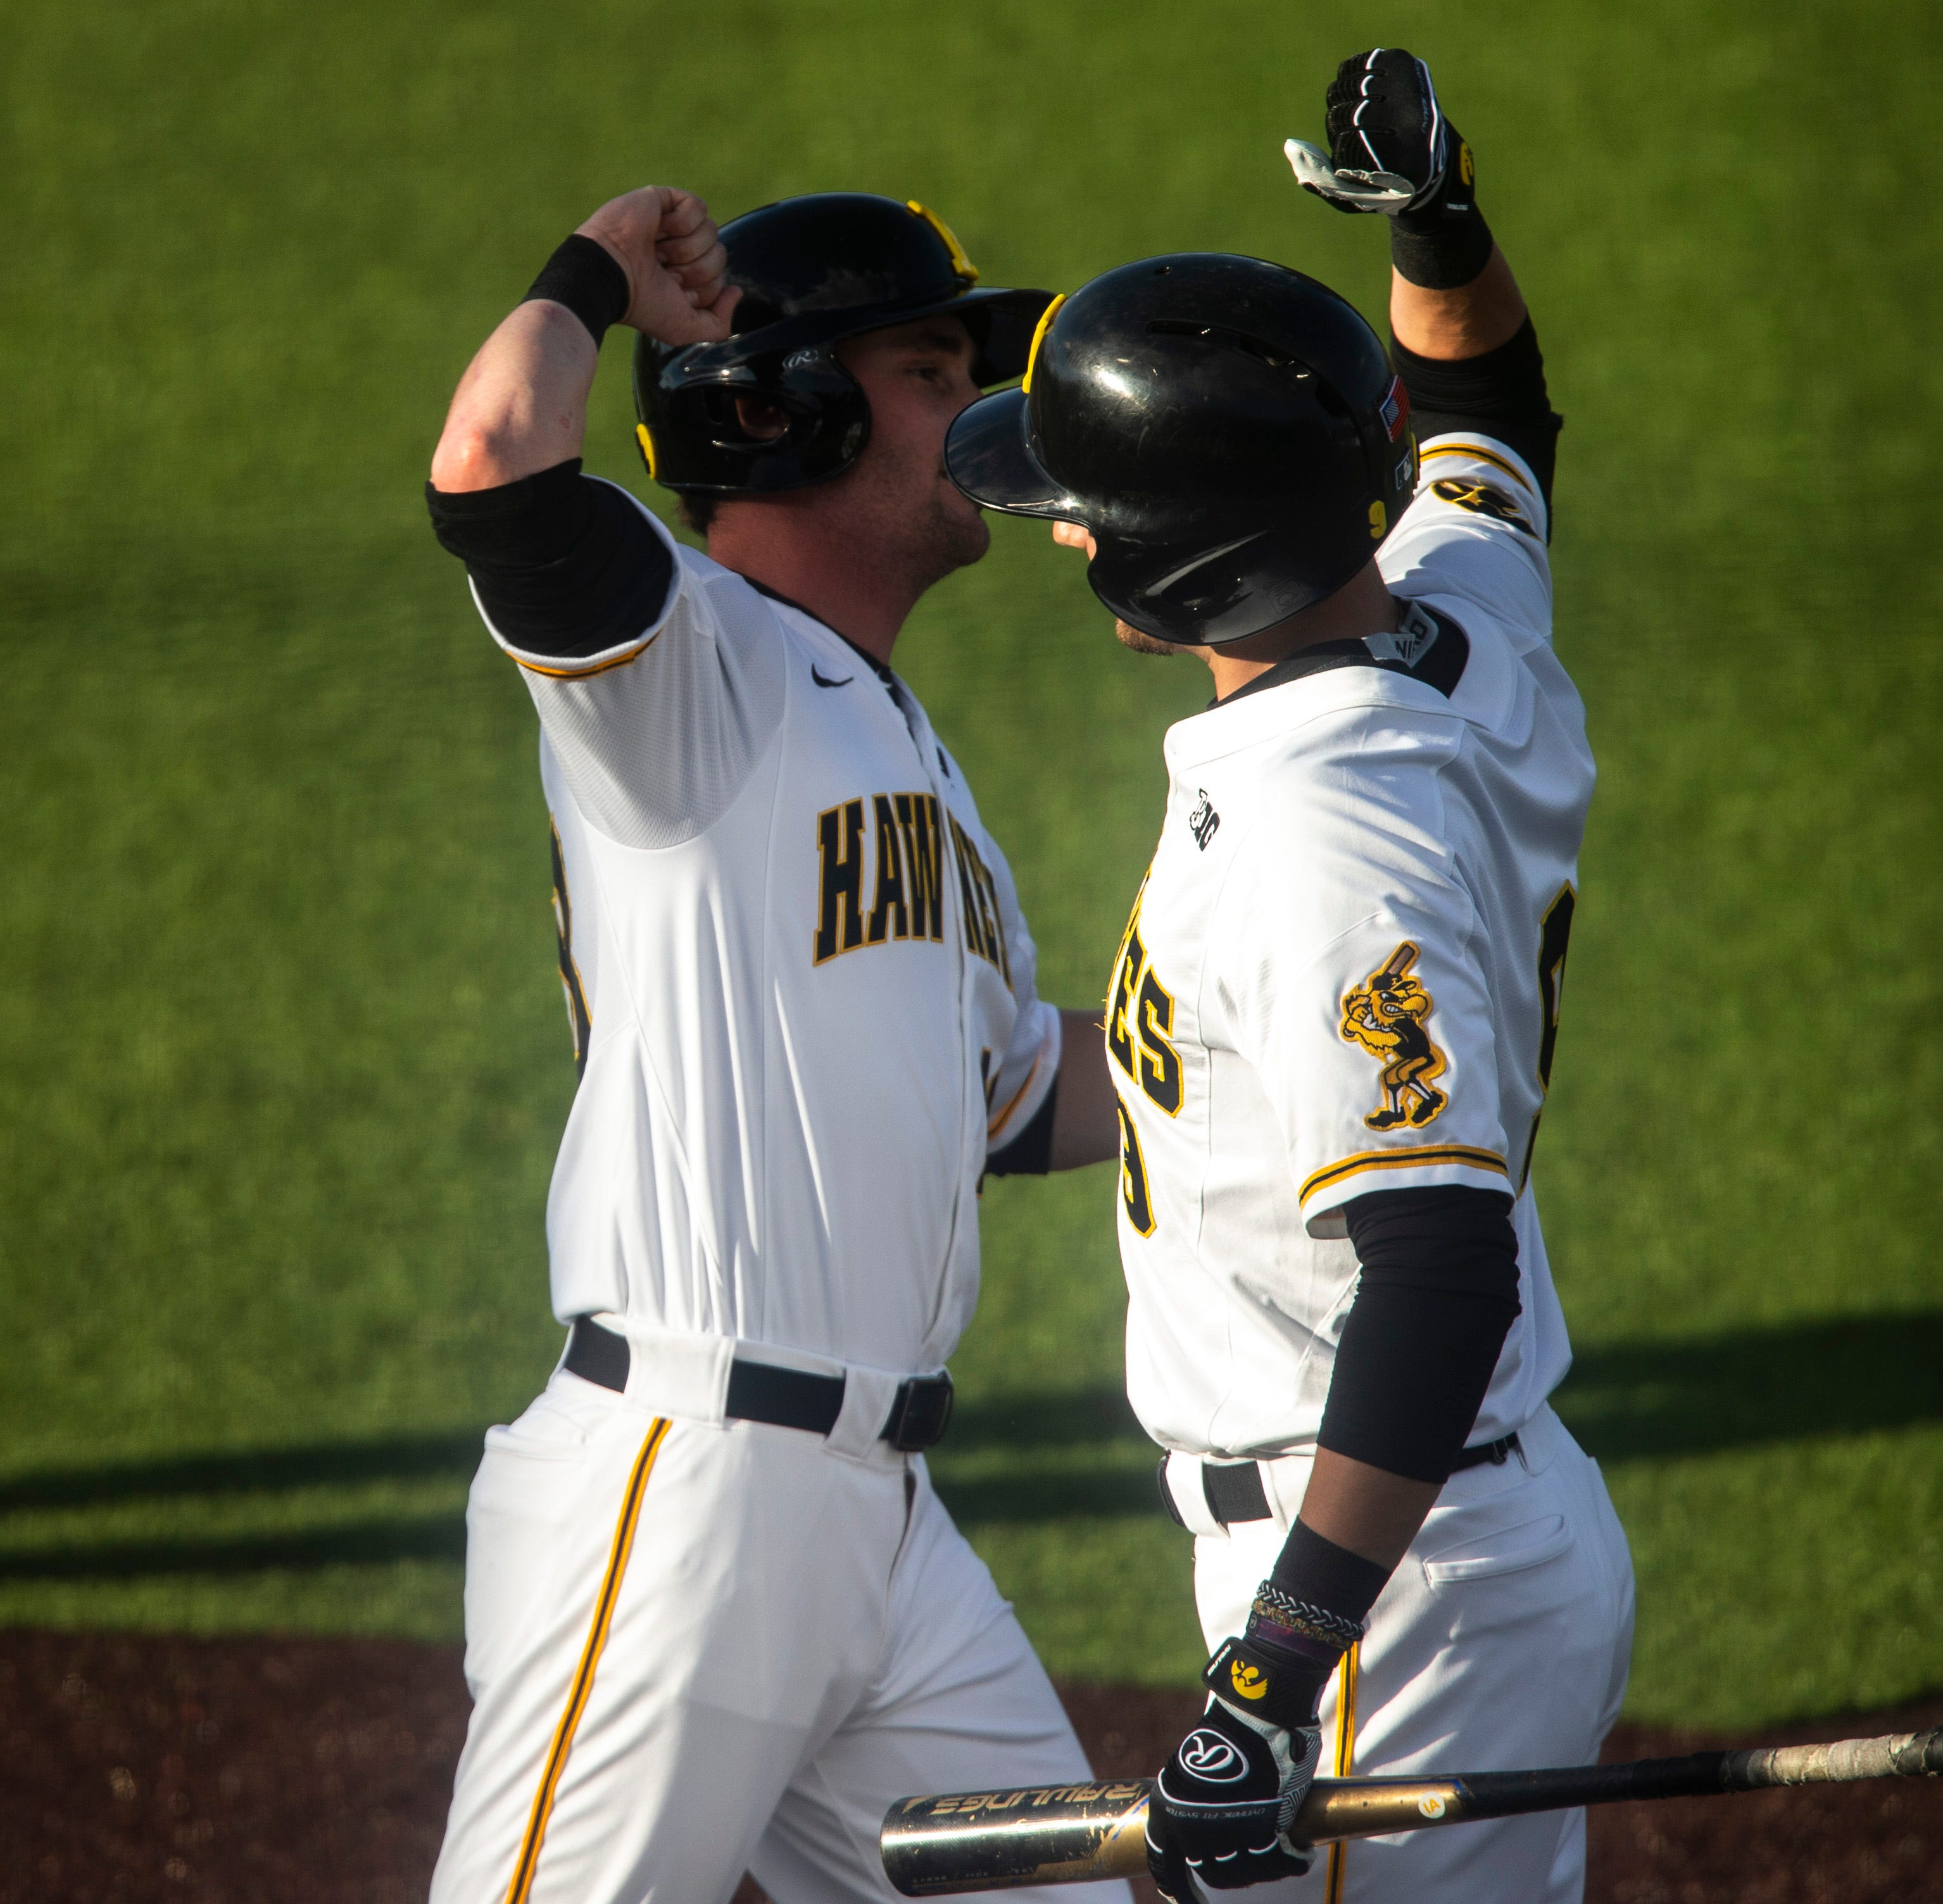 Hawkeyes take seesawing series opener against Michigan State